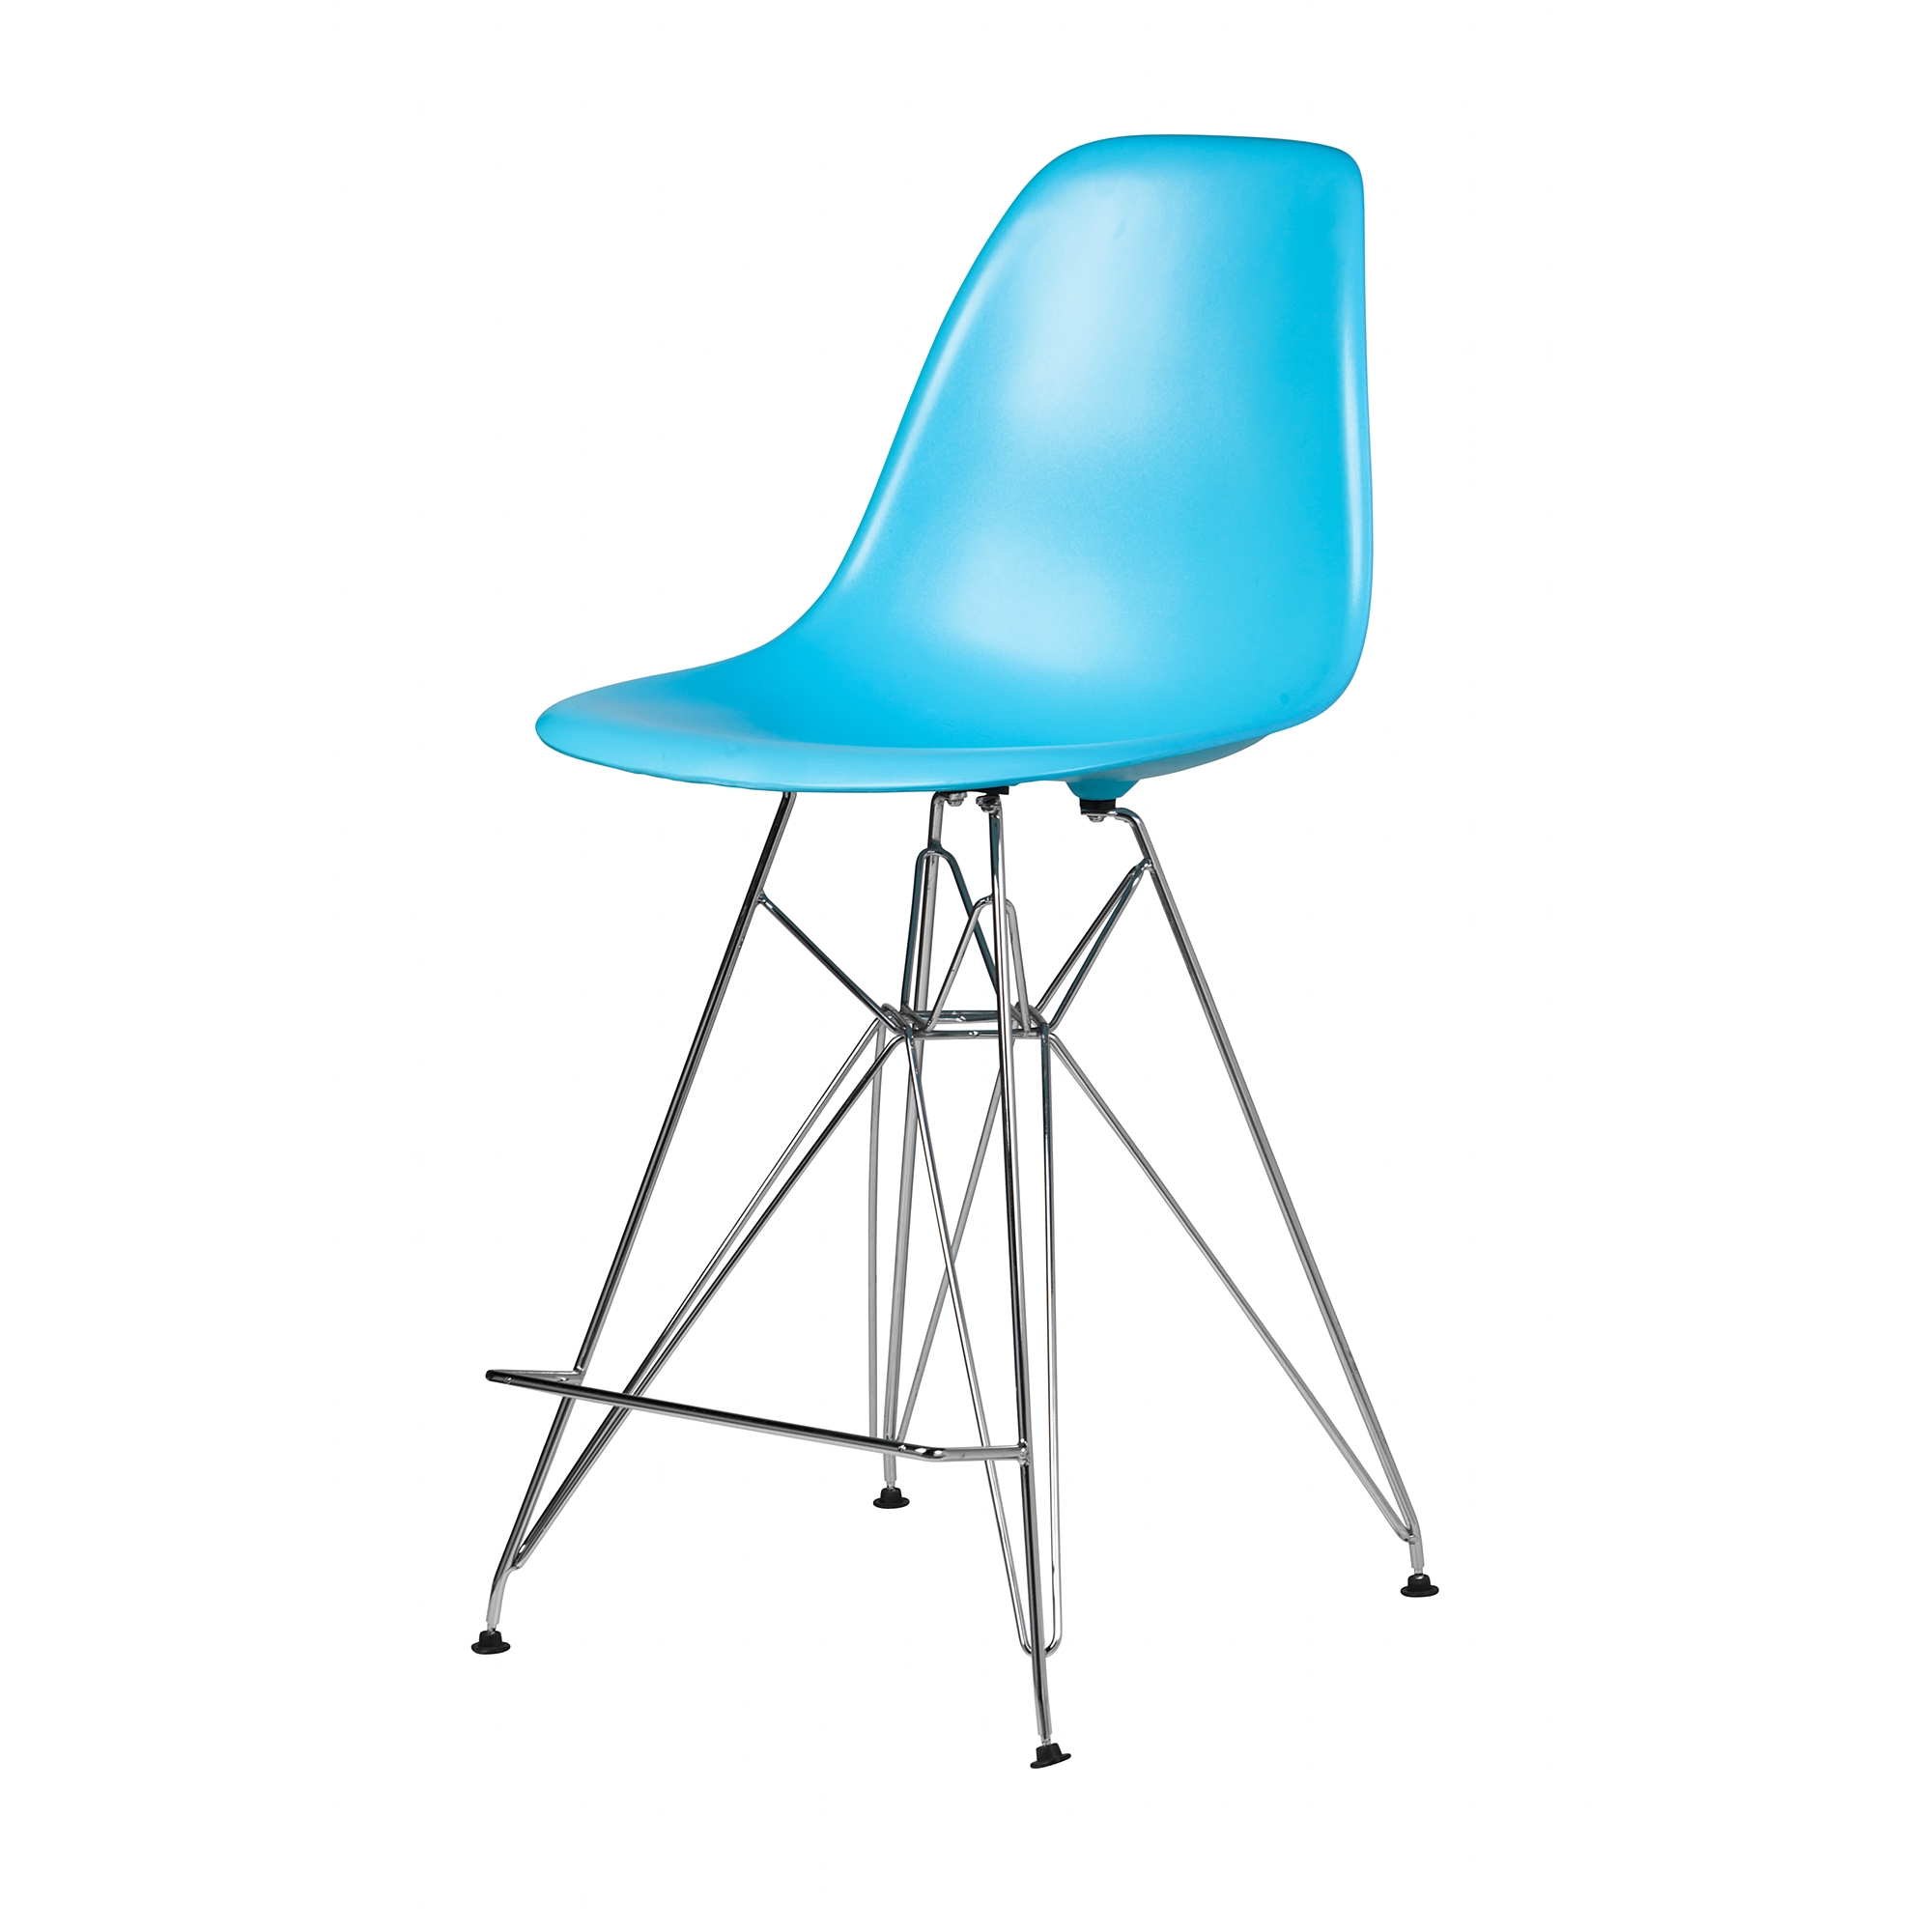 Outstanding Molded Mid Century Blue Counter Stool Machost Co Dining Chair Design Ideas Machostcouk